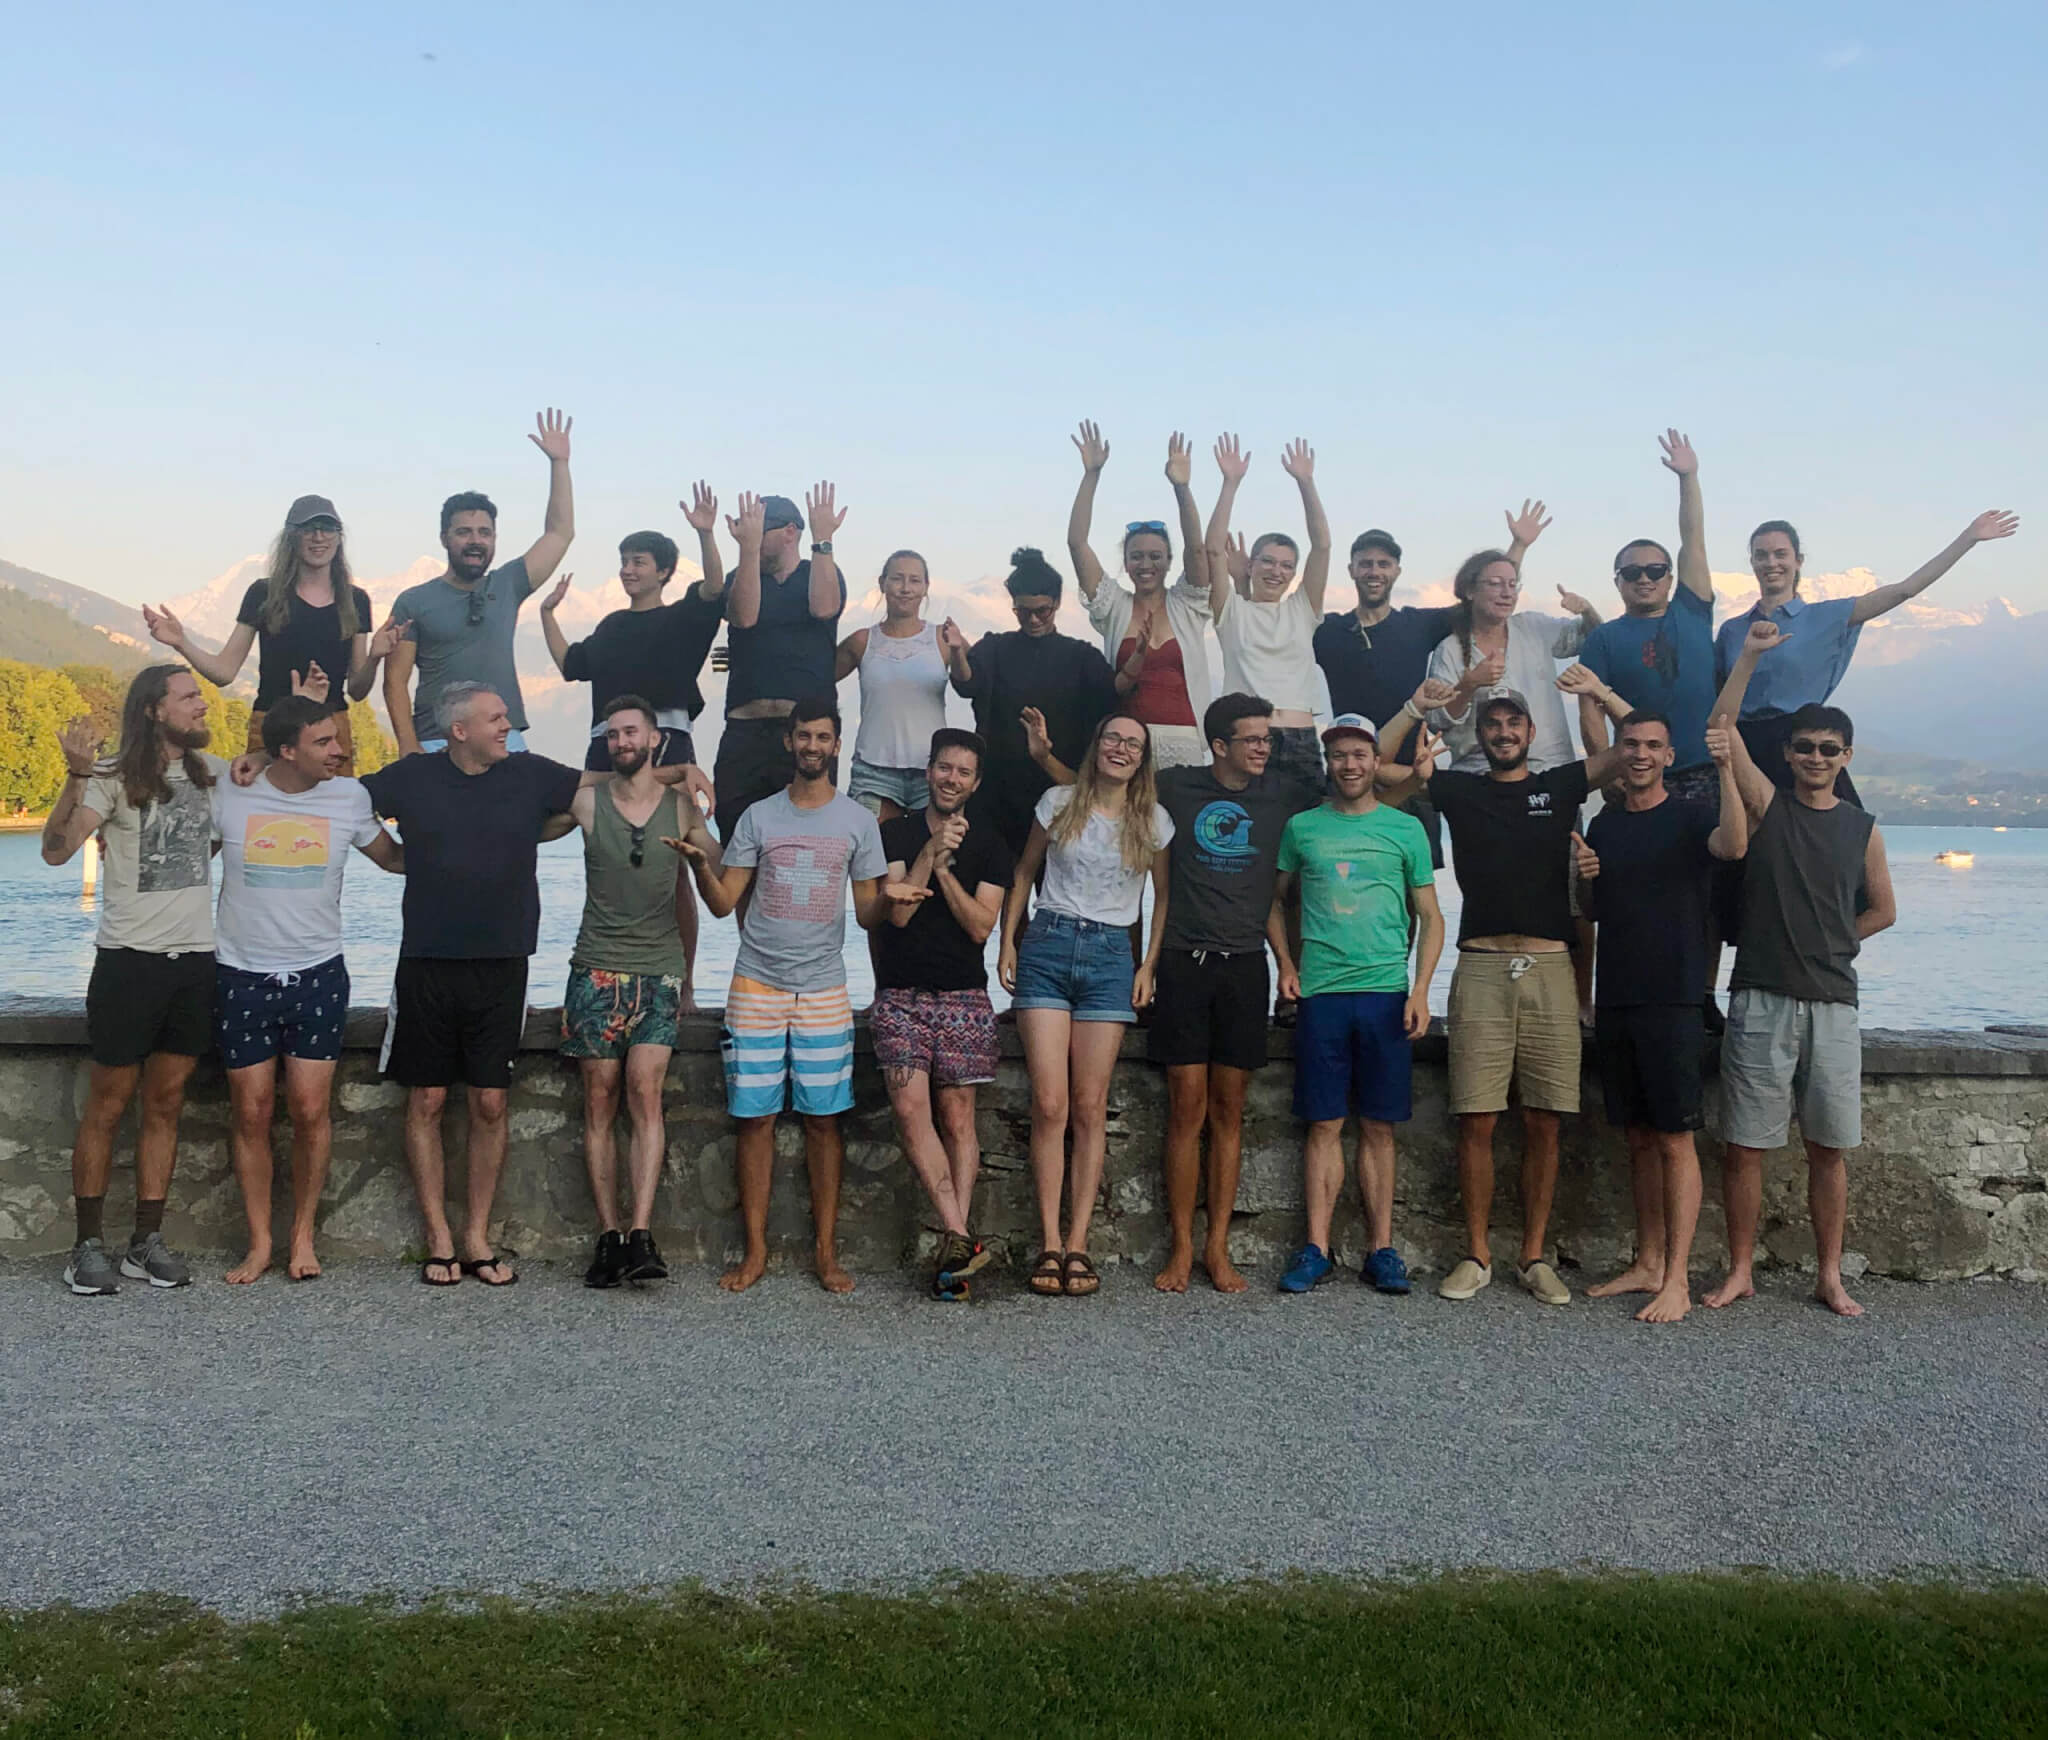 The Crowther Lab members posing for a group picture in front of a lake